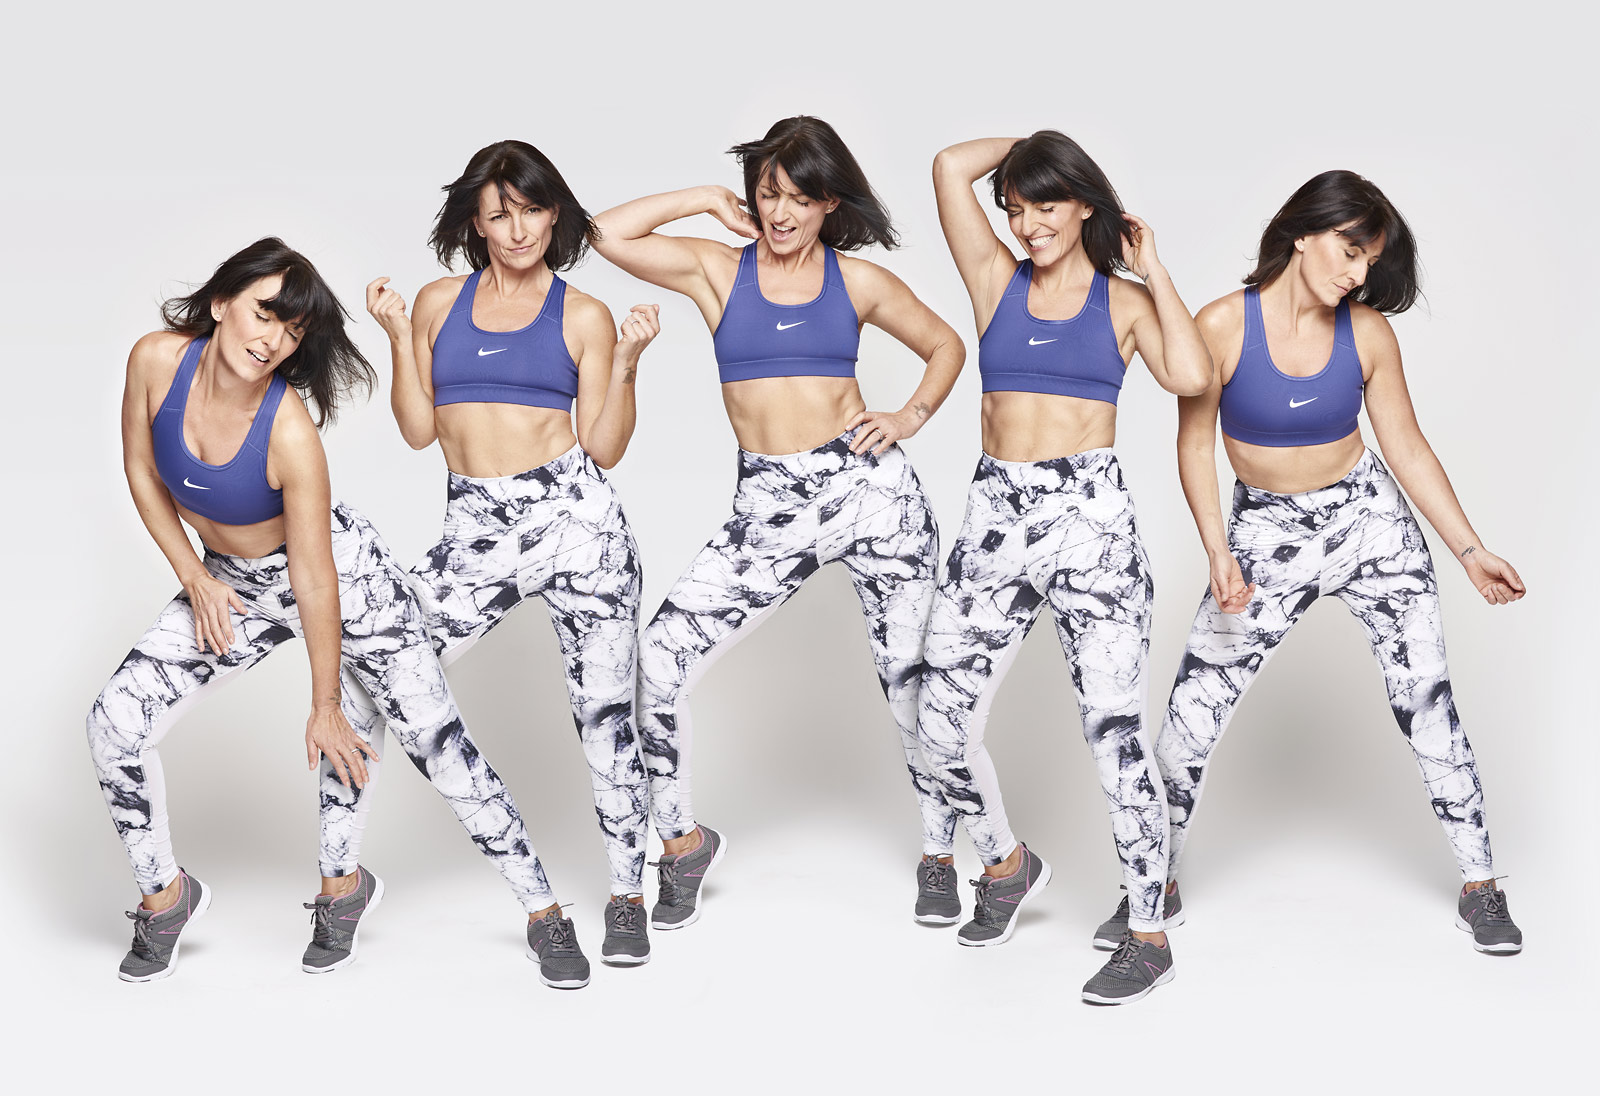 Davina McCall for Your Fitness magazine, photographed by Oliver Suckling at CliQQ